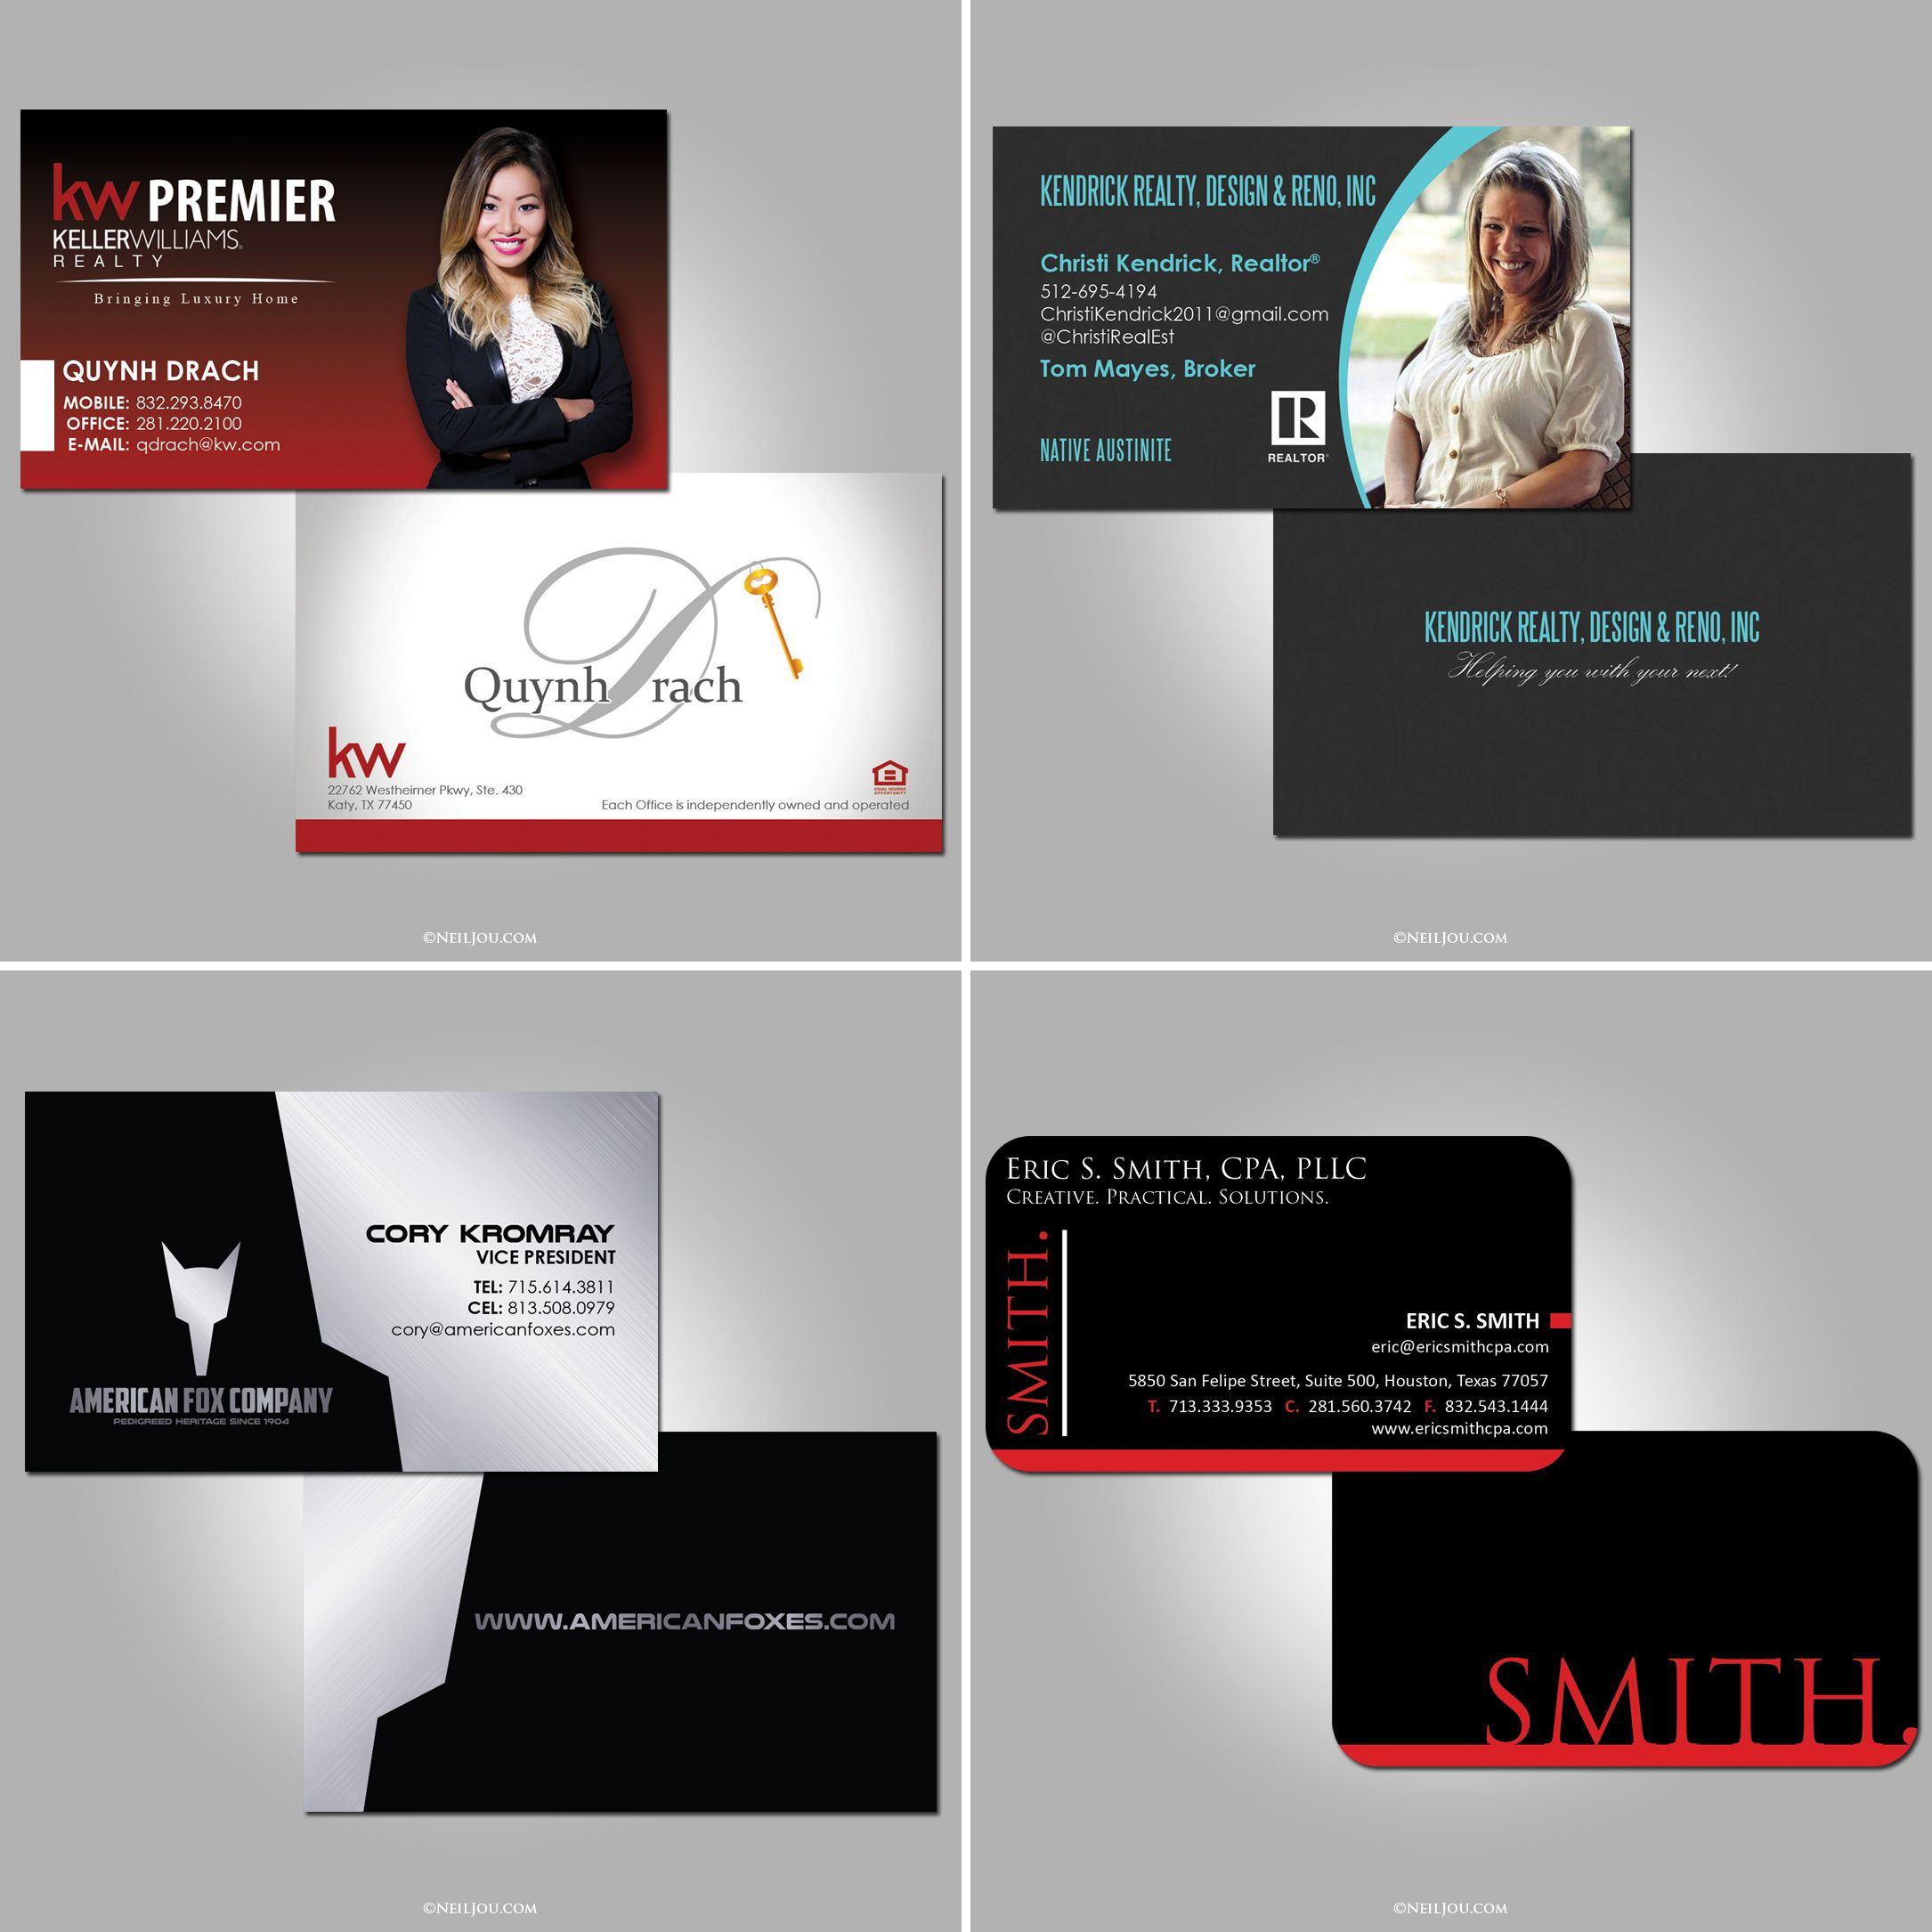 Latest business cards design production by neiljouproductions latest business cards design production by neiljouproductions smallbiz photoshop graphicdesign reheart Choice Image